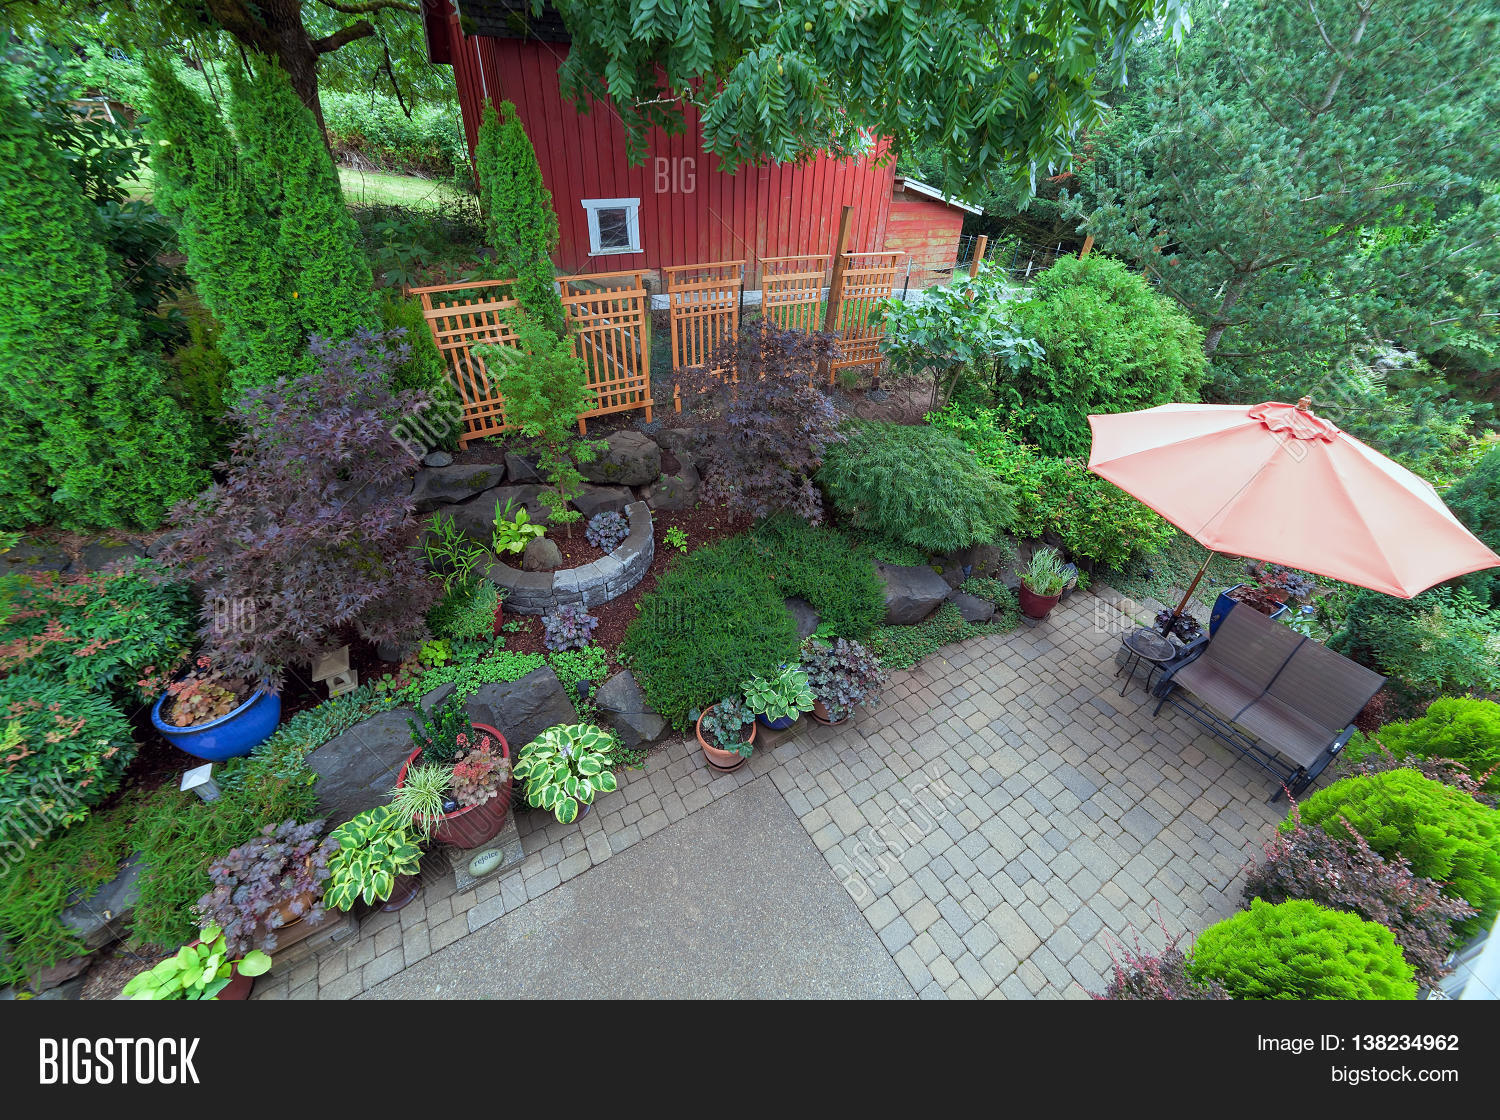 Backyard garden landscaping with paver bricks patio hardscape trees potted plants shrubs pond rocks furniture and red barn Stock Photo & Stock ...